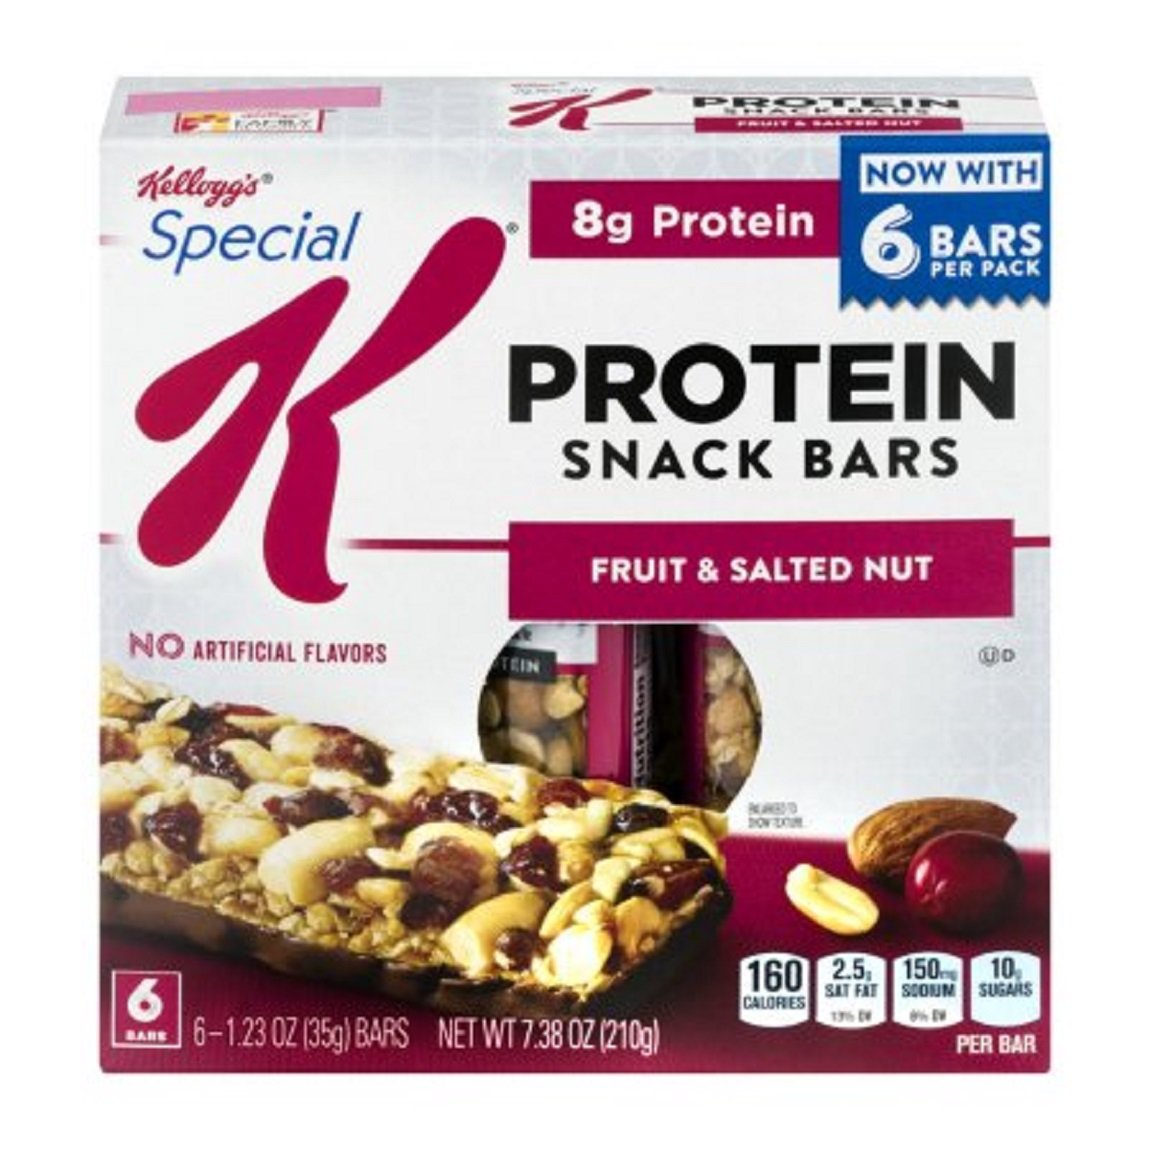 Protein Snack Bars Fruit & Salted Nuts 6 Bars/Box ( 3 boxes) Kellogg's Special K